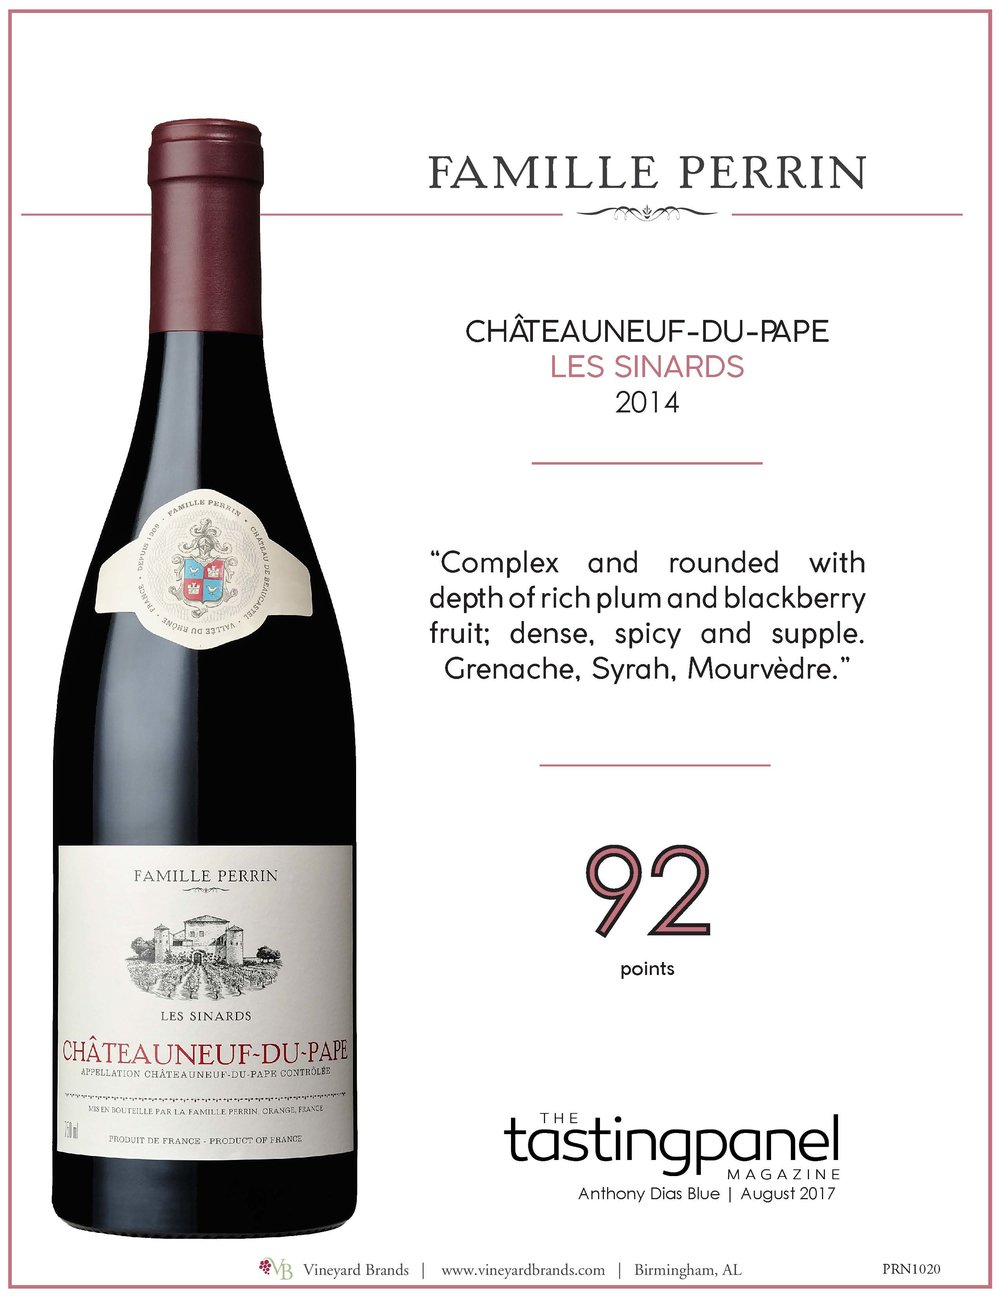 Famille Perrin Chateauneuf du Pape Les Sinards 2014.jpg